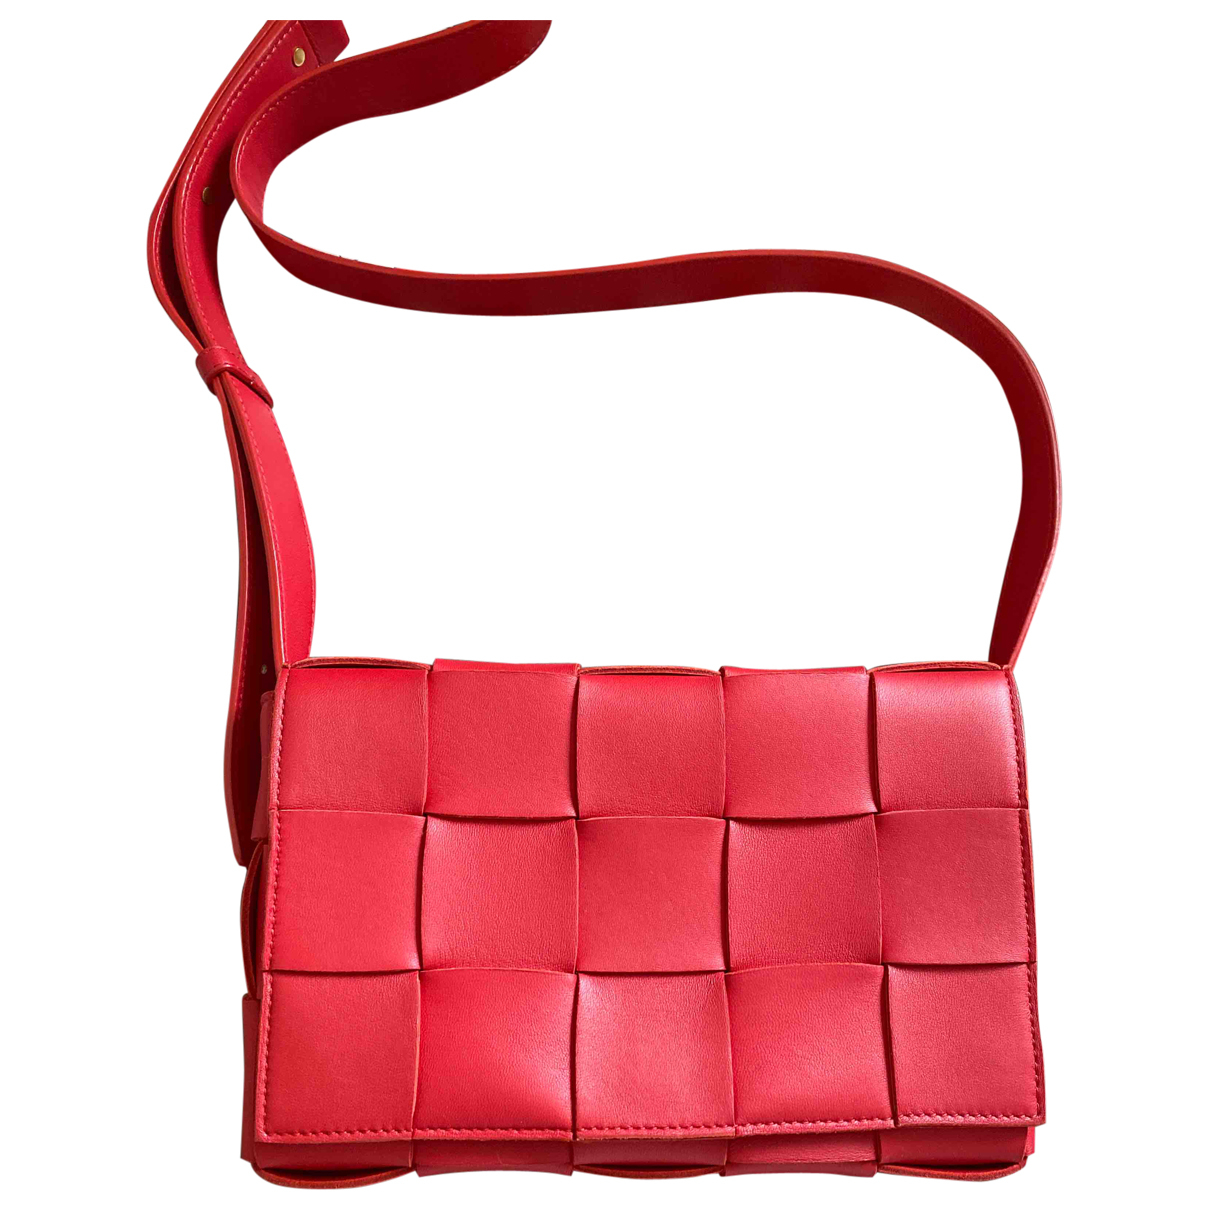 Bottega Veneta Cassette Red Leather handbag for Women \N